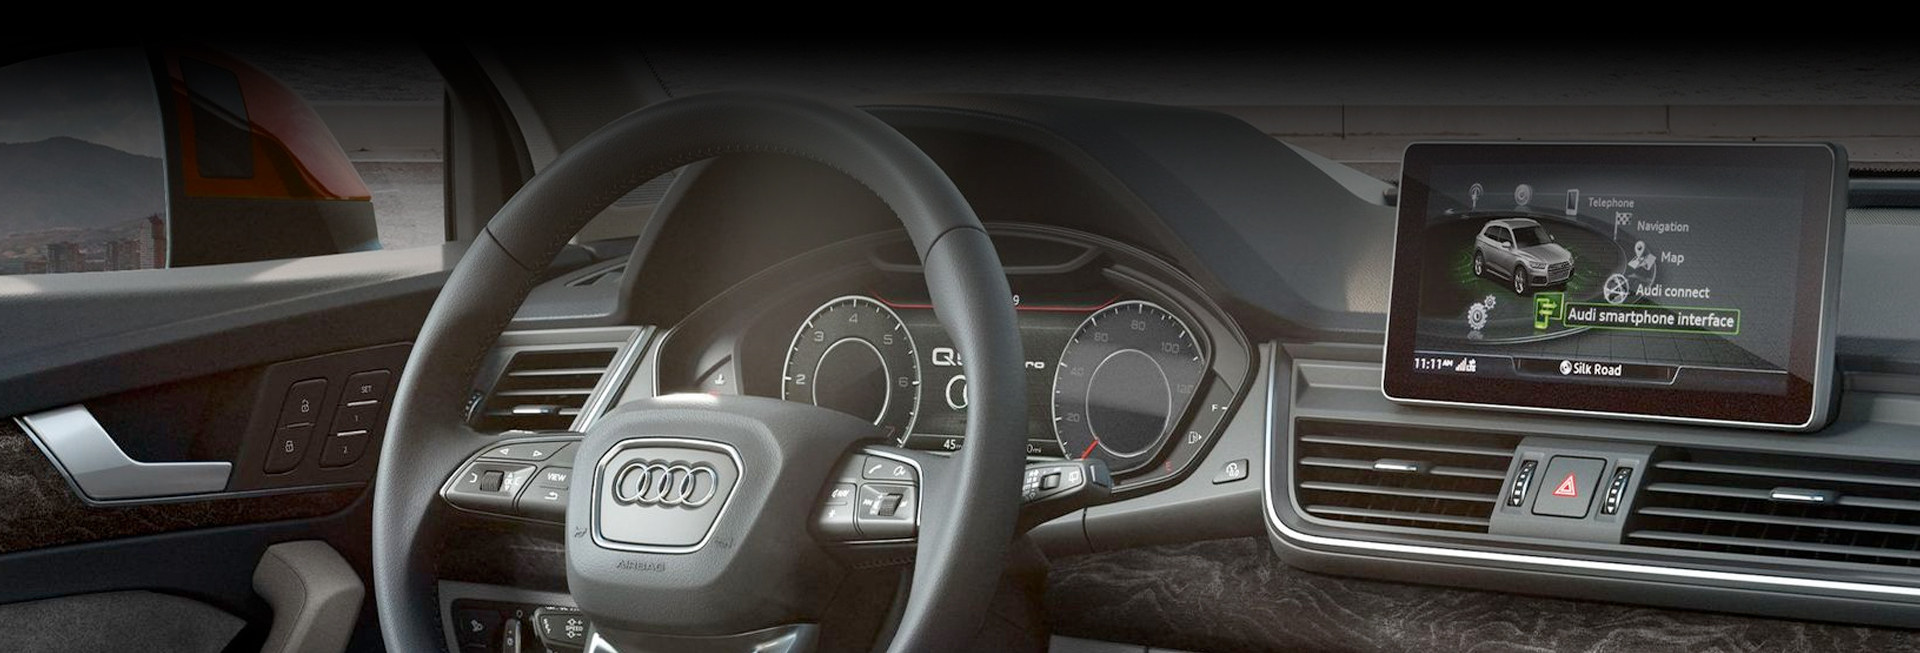 2020 Audi Q5 - Dashboard and Digital Cockup